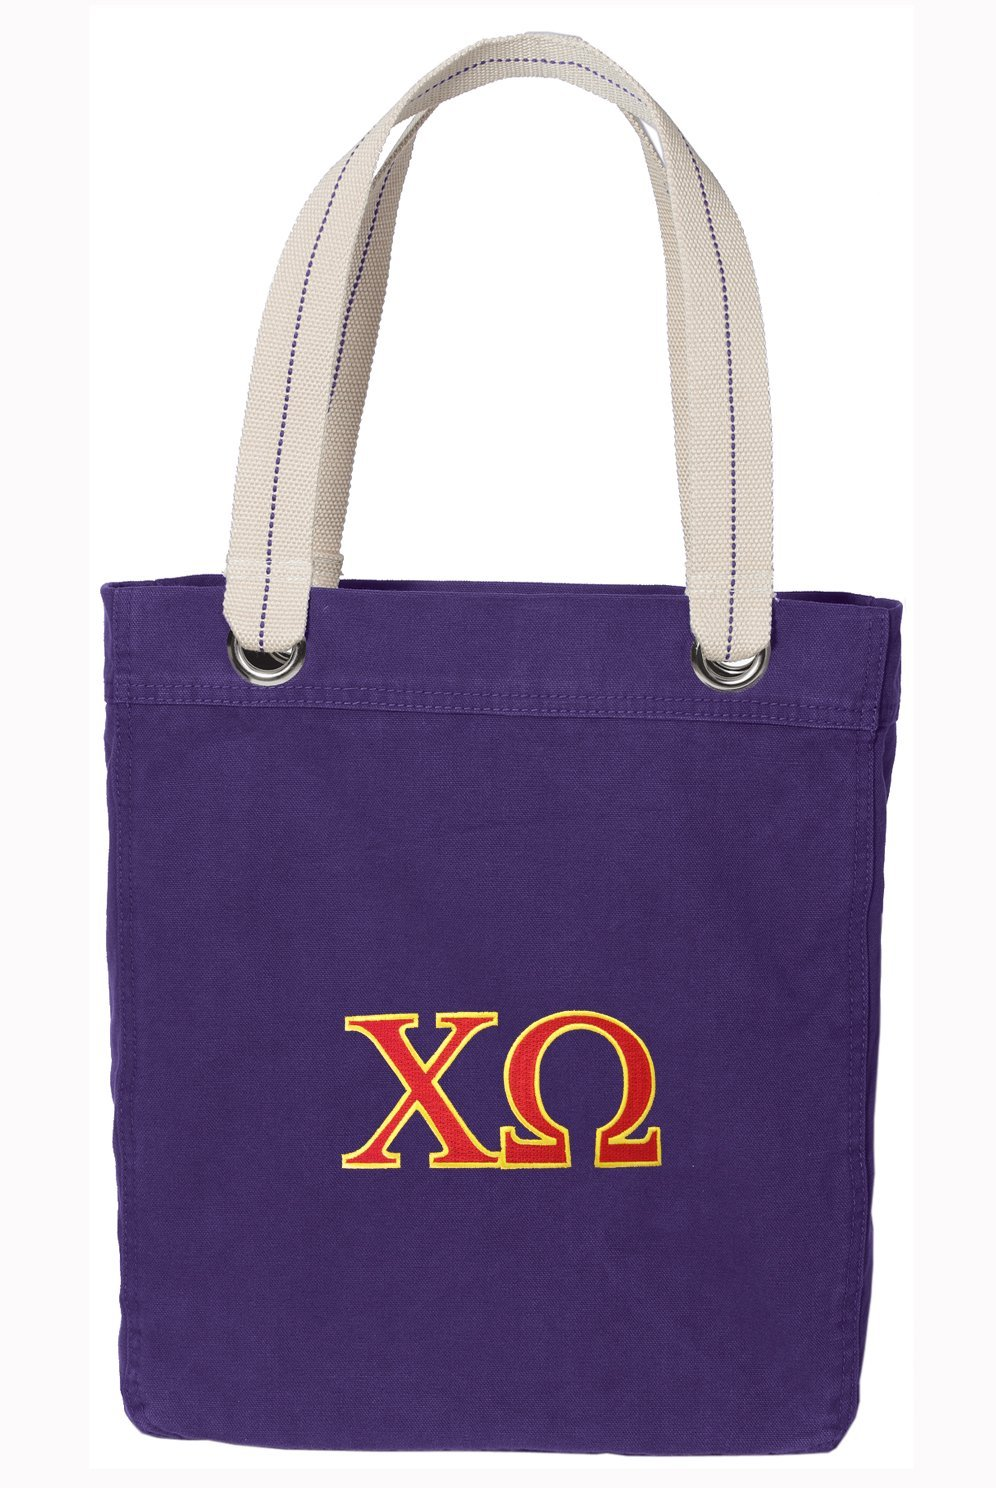 Chi Omega Tote Bag Sorority Shopping or Travel Bags